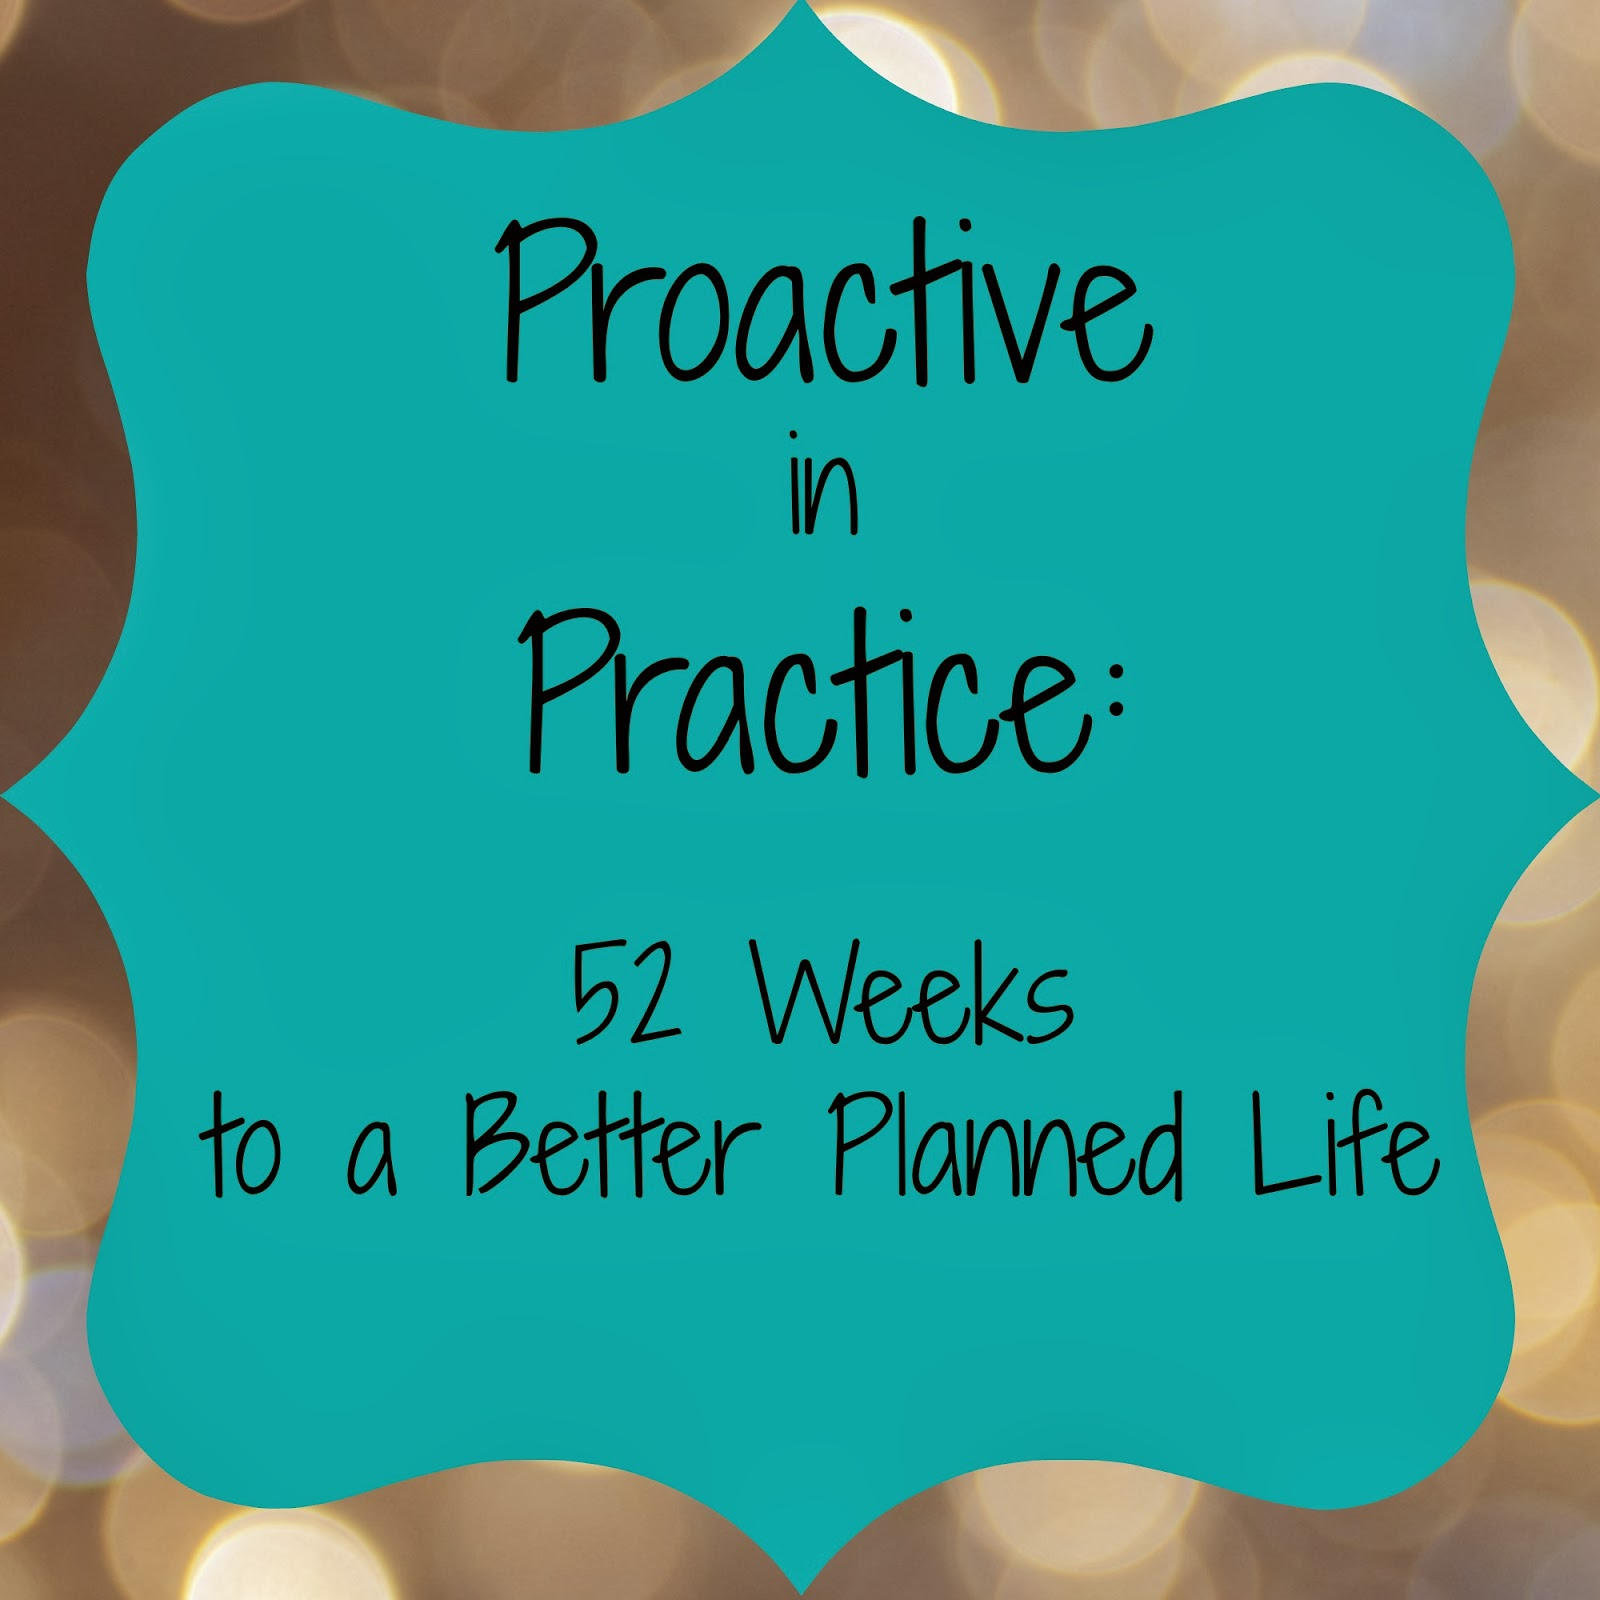 Proavtive in Practice: 52 Weeks to a Better Planned Life @ Adventures with Jude